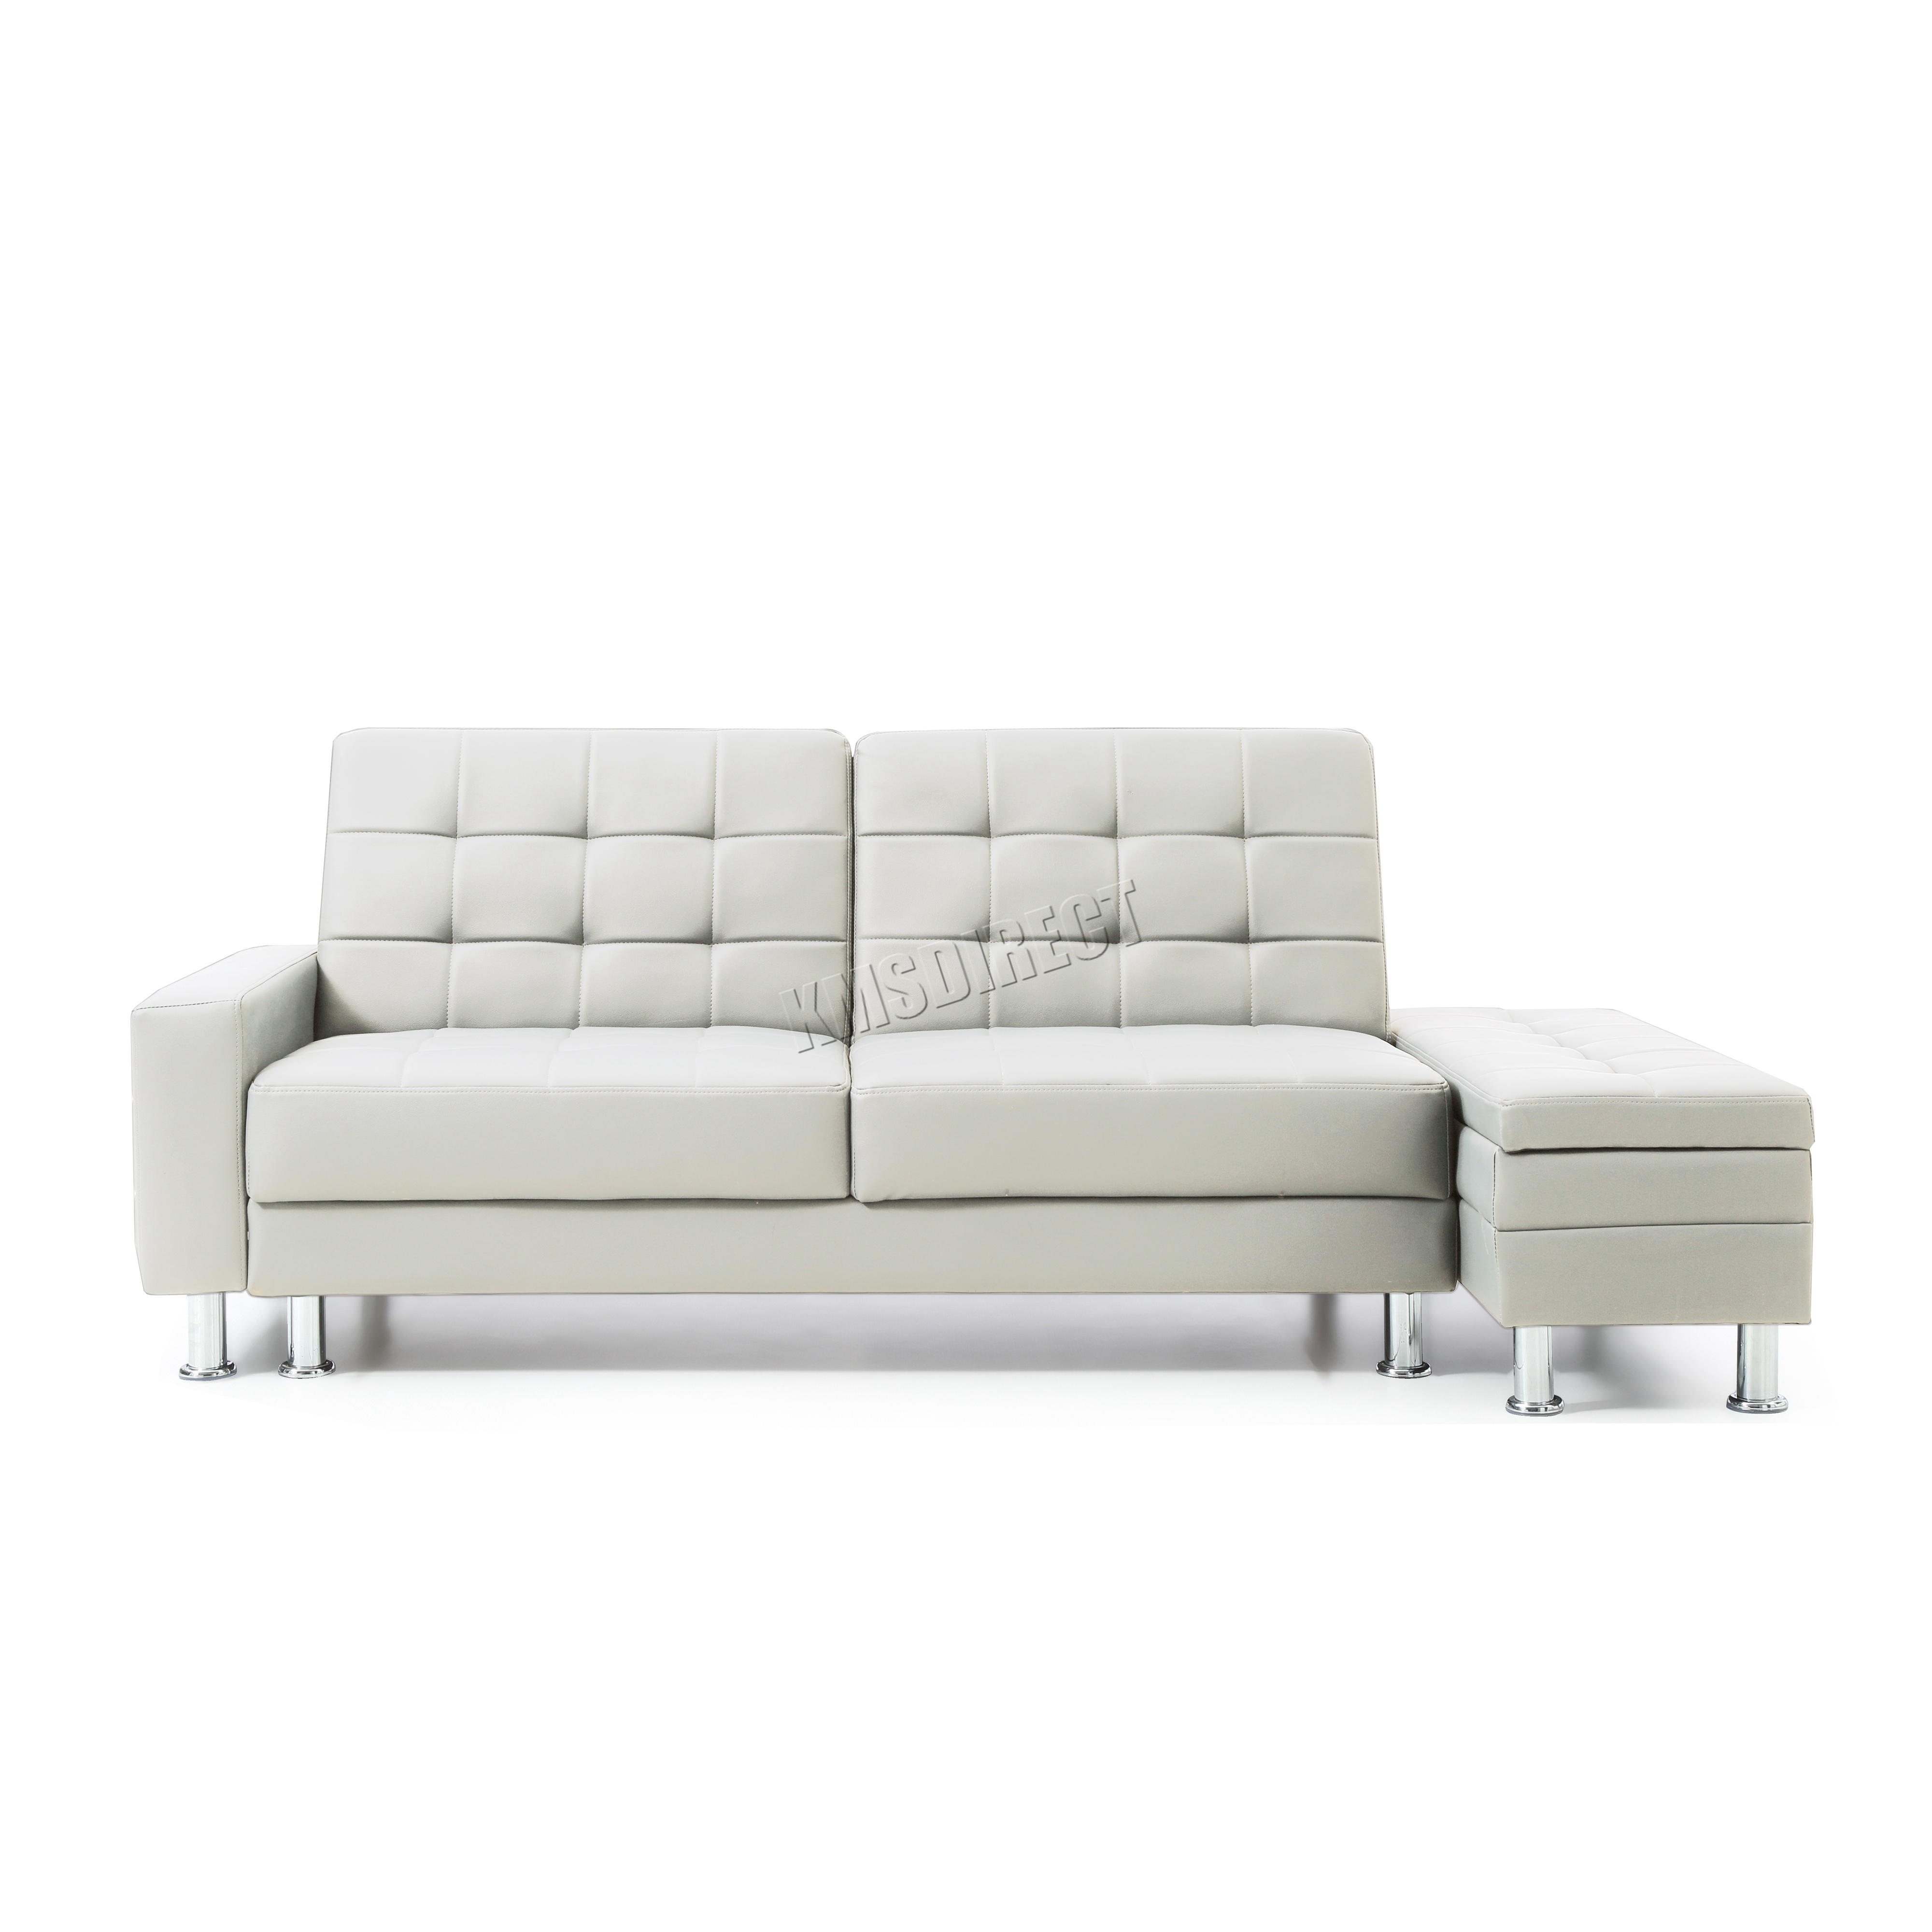 Ottoman sofa beds bed in a box with bi fold lid make your for Sofa bed in a box